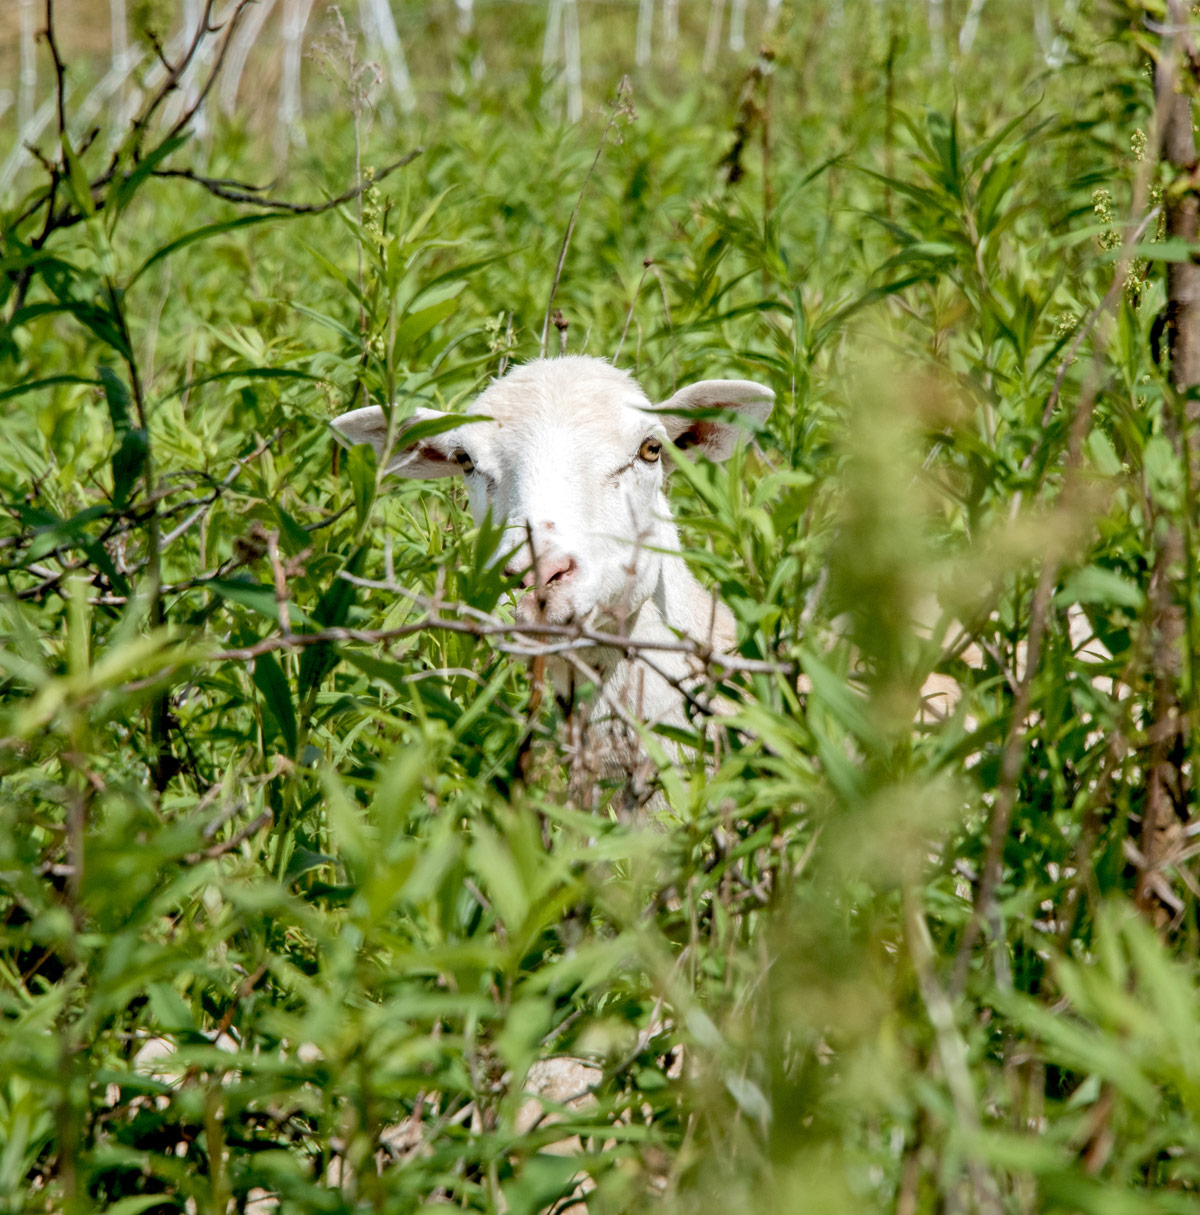 Sheep in the grass